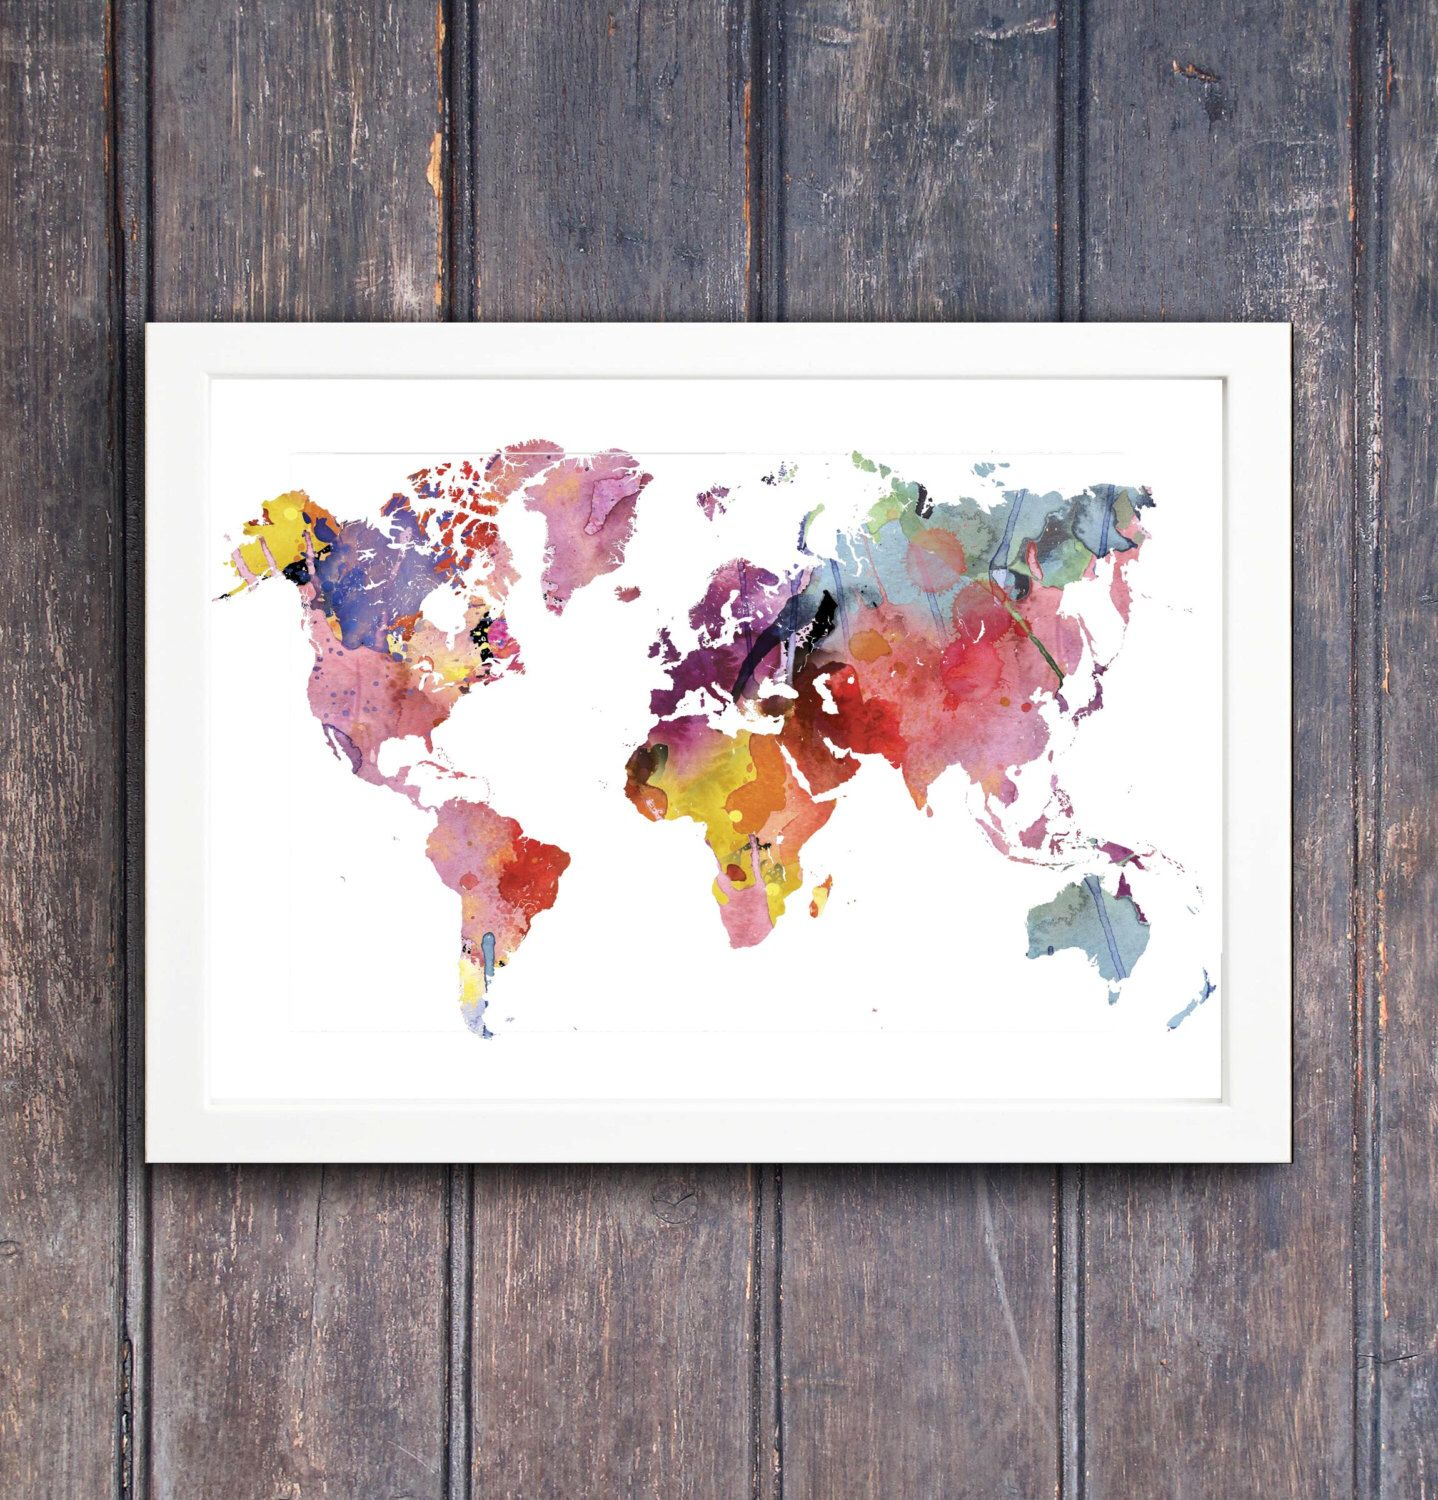 Rainbow watercolor world map printable wall art instant download rainbow watercolor world map printable wall art instant download by southpacific on etsy https gumiabroncs Gallery